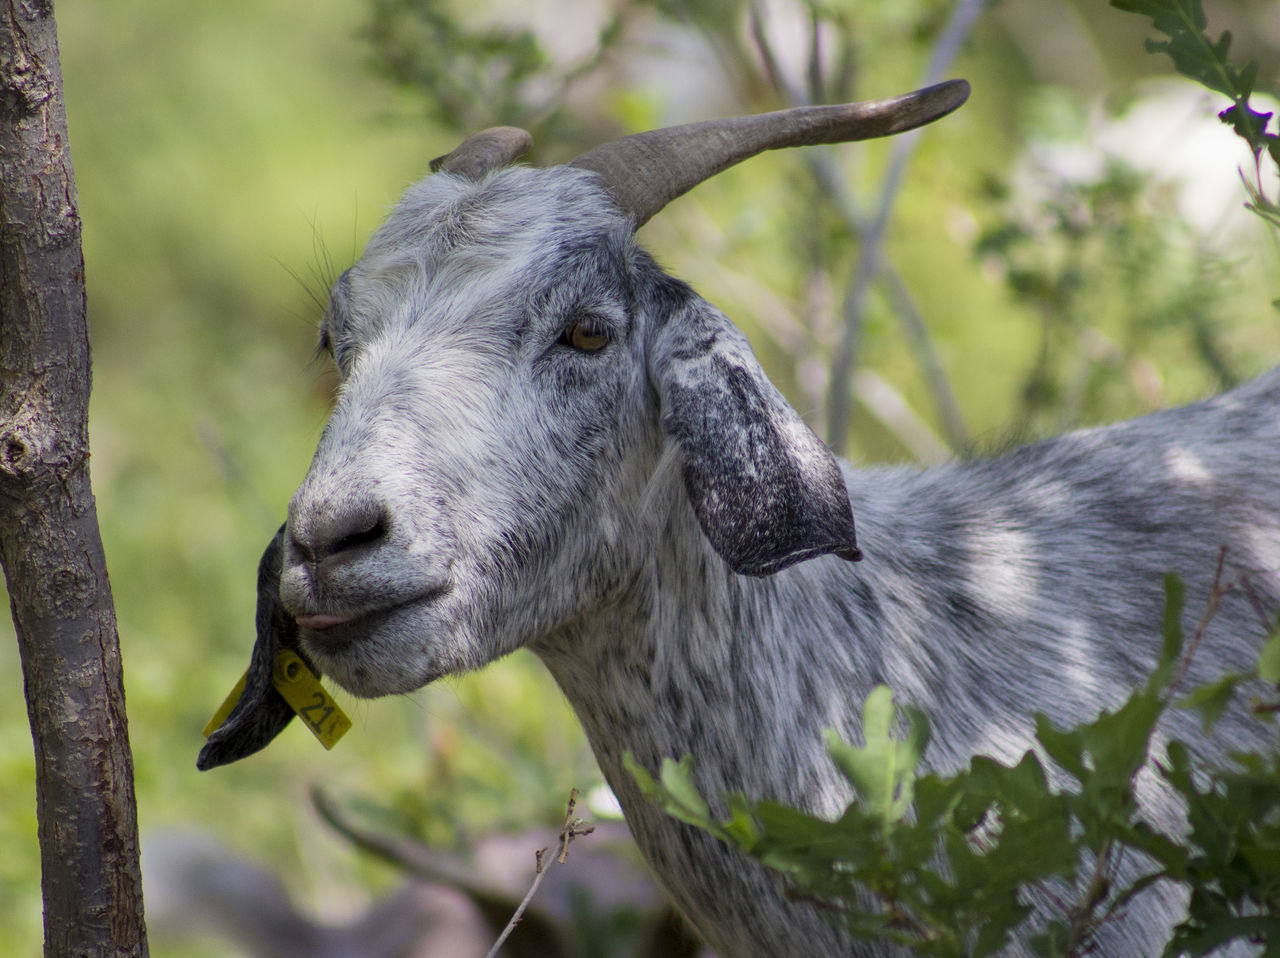 Grey Goat Close-up Close—up Day Defensible Space Fire Mitigation Goat Goat For Fire Mitigation Grey Goat Horns No People No People, One Animal Outdoors Vegetation Reduction Weed Management Wildfire Protection